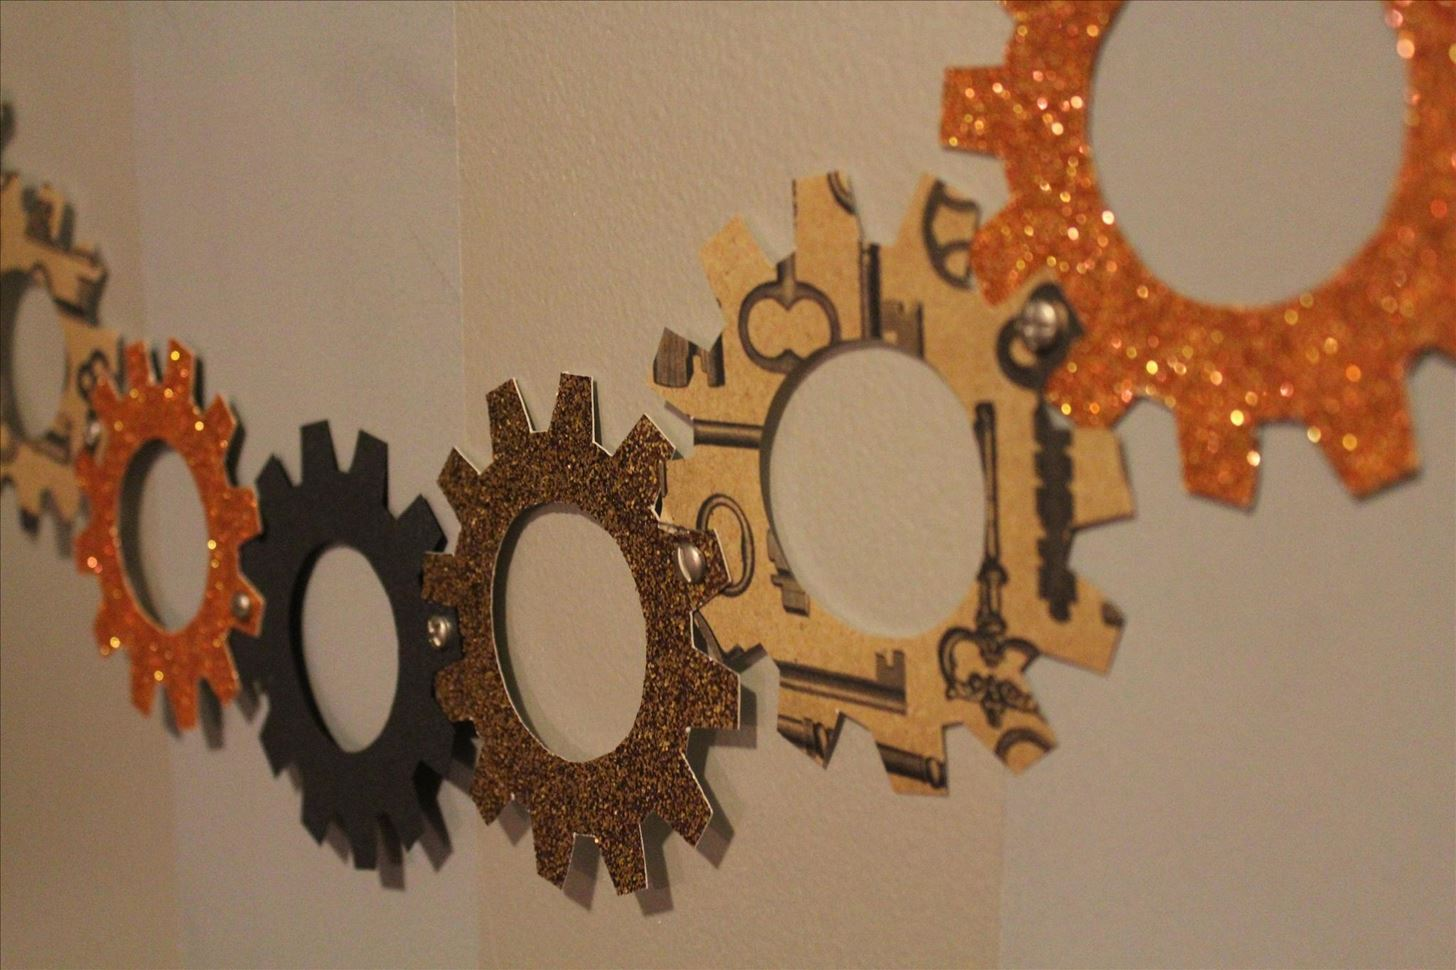 steampunk your halloween decorations with these diy interlocking paper gears steampunk rd wonderhowto - Simple Homemade Halloween Decorations